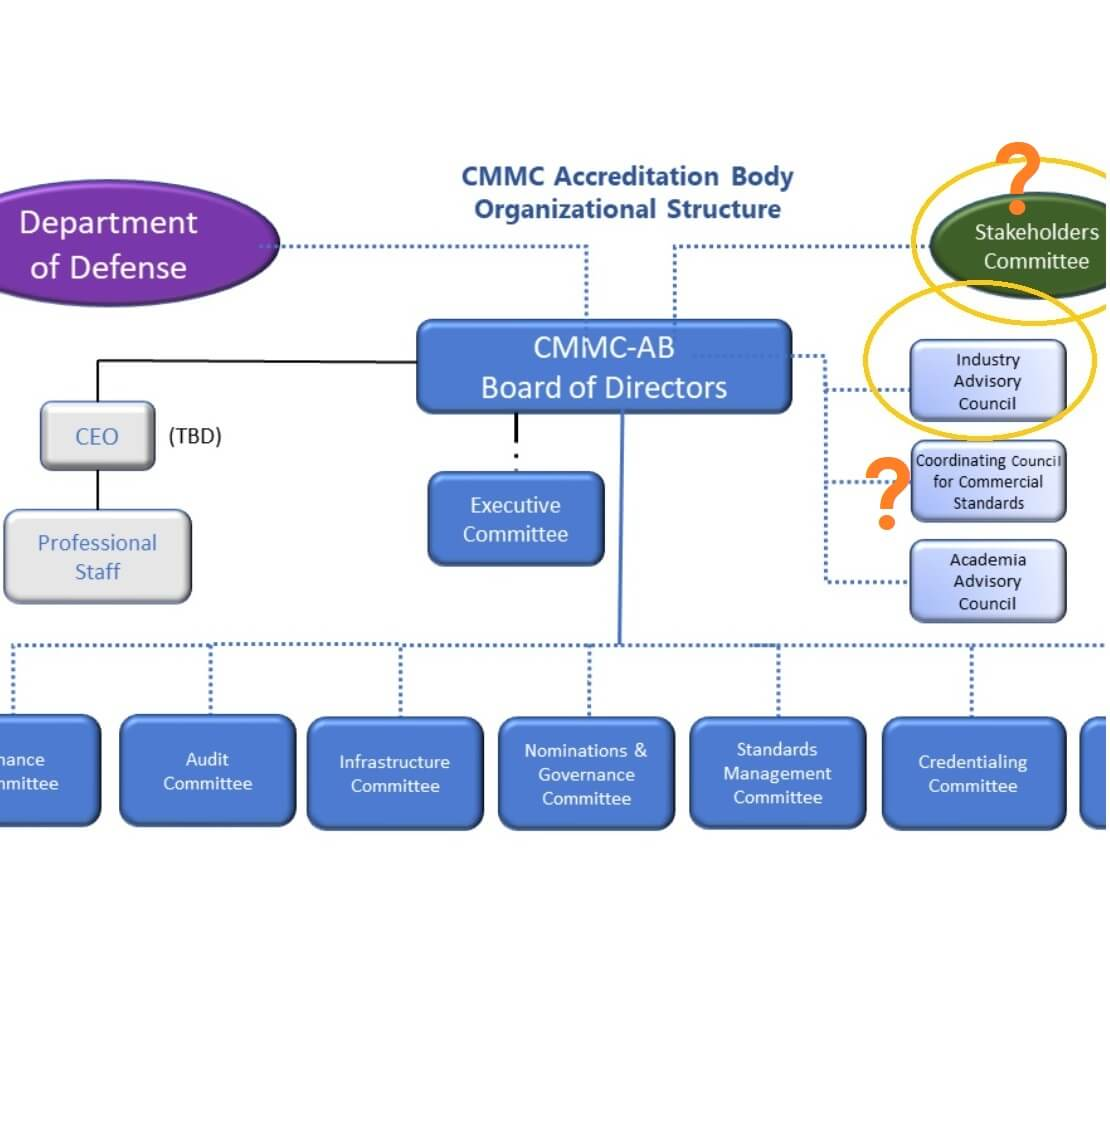 CMMC Org chart showing industry advisory council, stakeholders